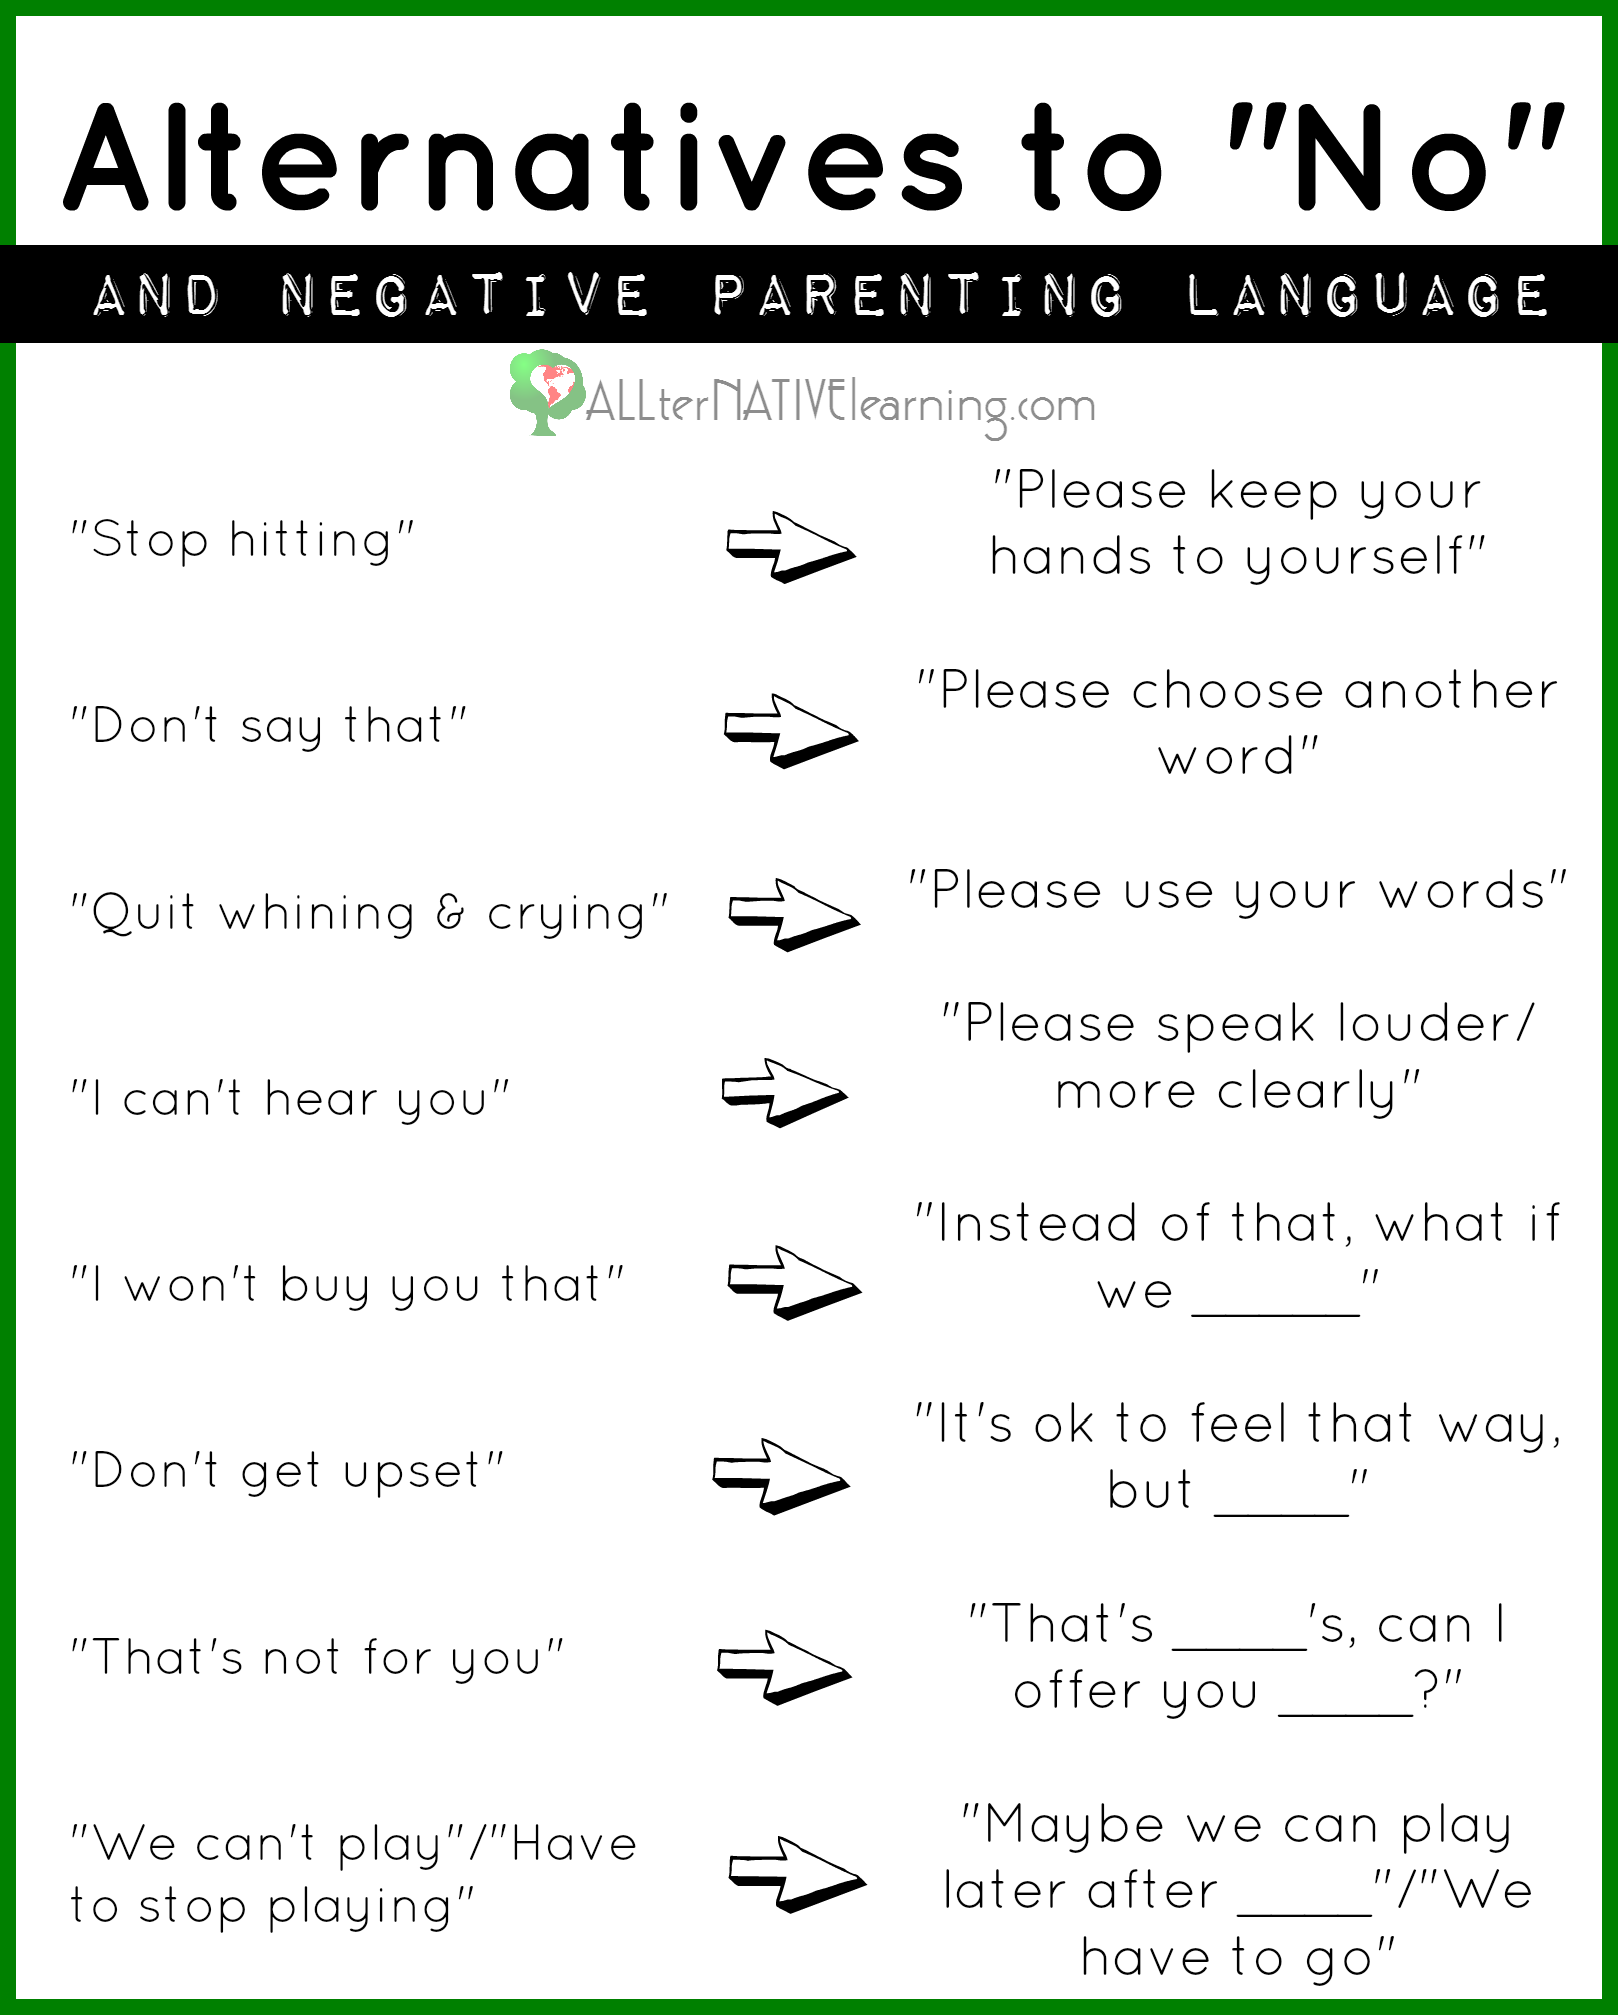 How negative language impacts kids and why no should be limited #parenting